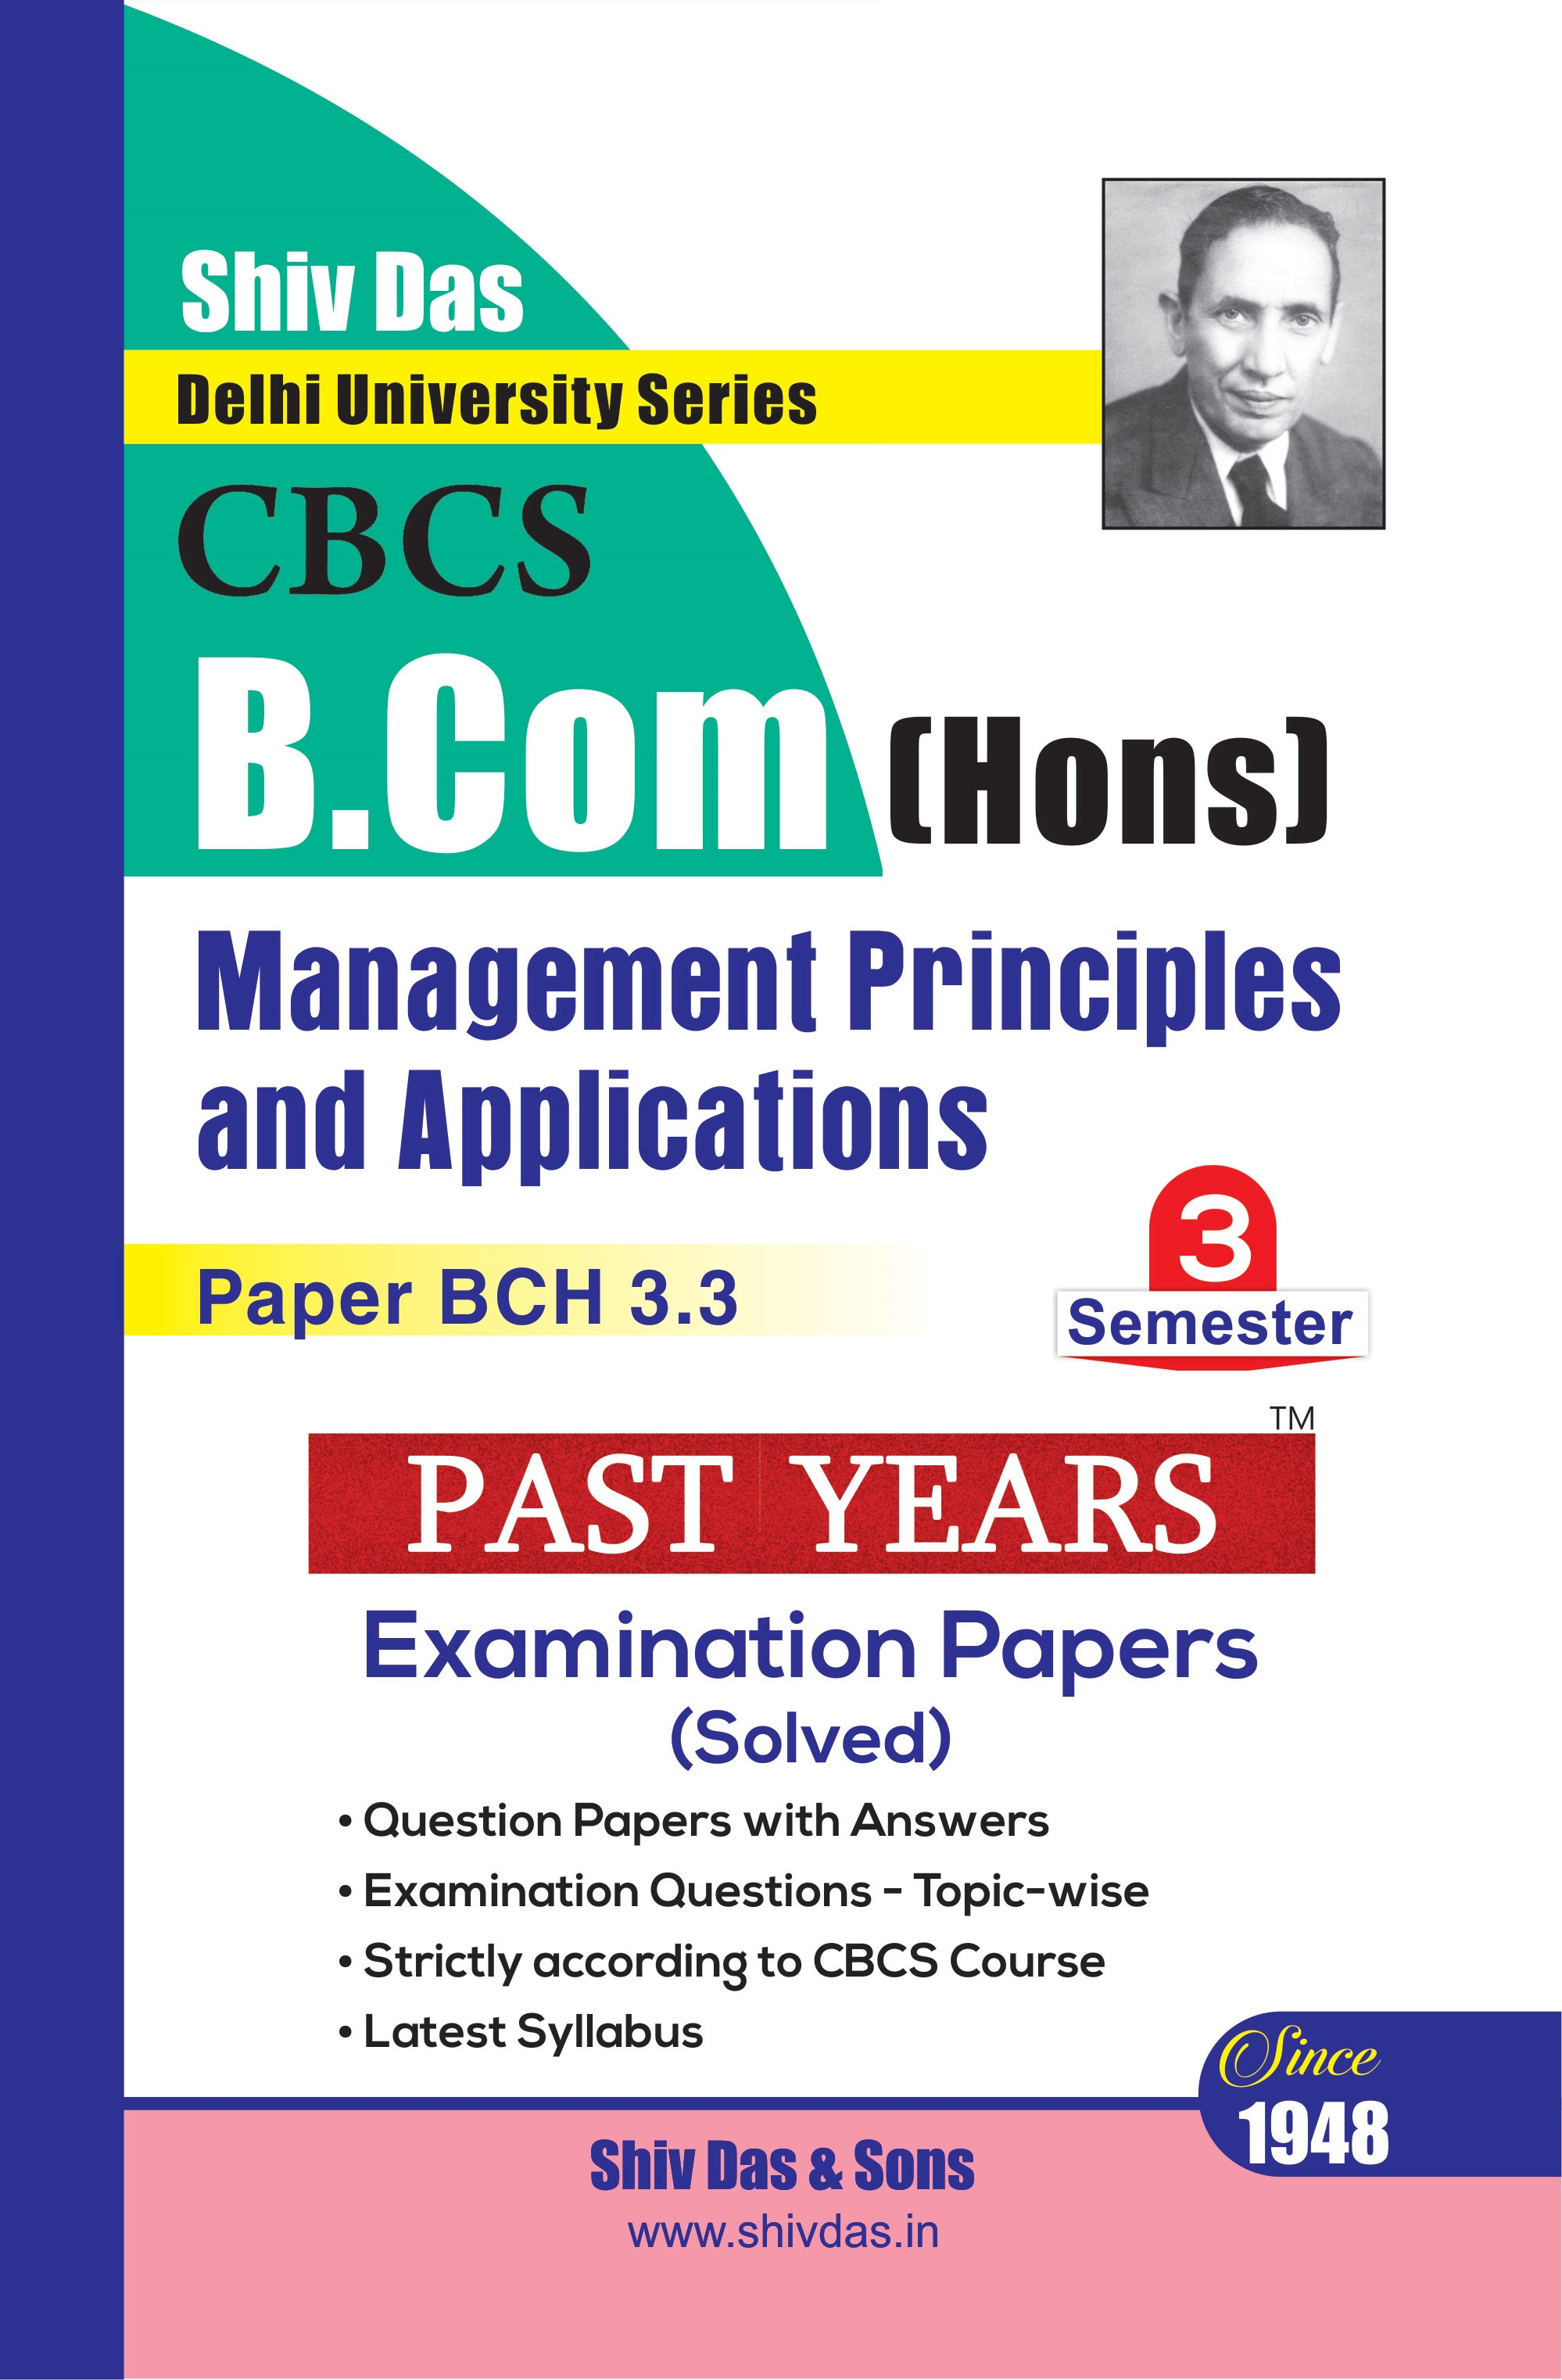 Management Principles and Applications for B.Com Hons Semester 3 for Delhi University by Shiv Das